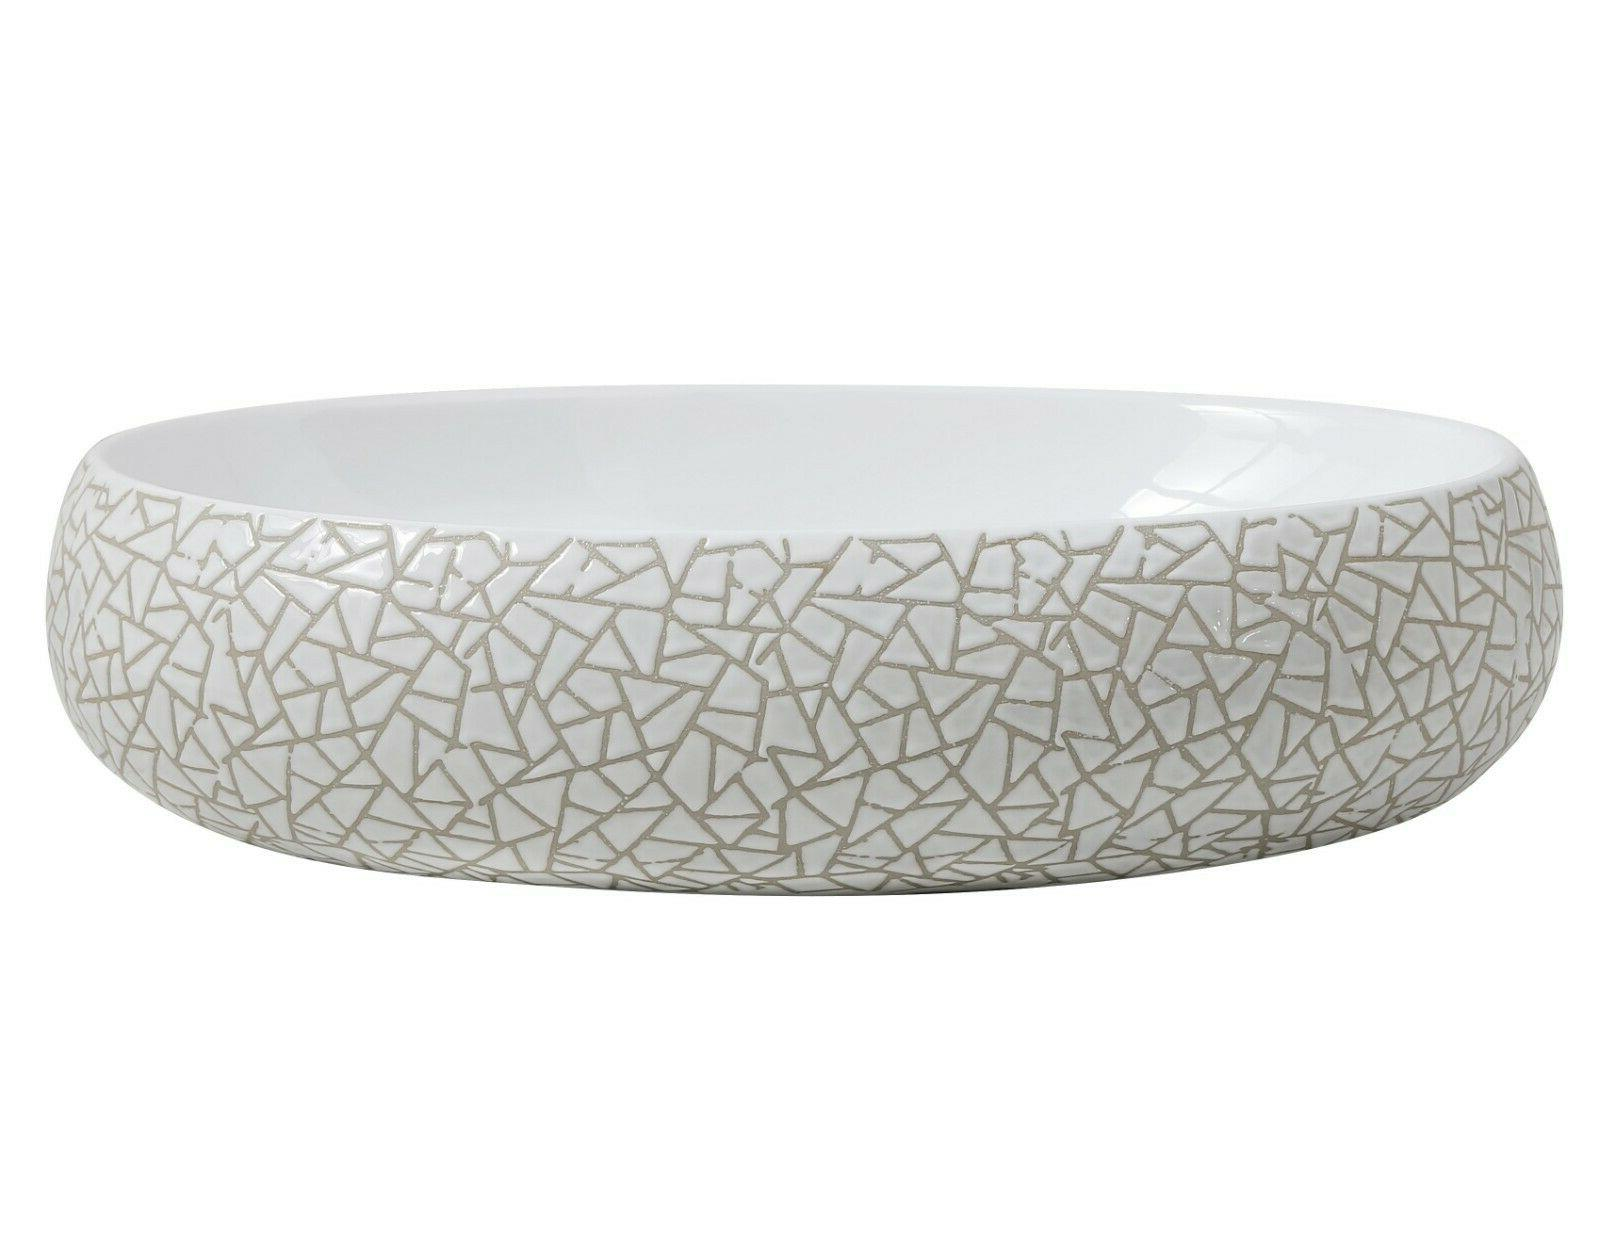 Bathroom Art Basin without Up Drain